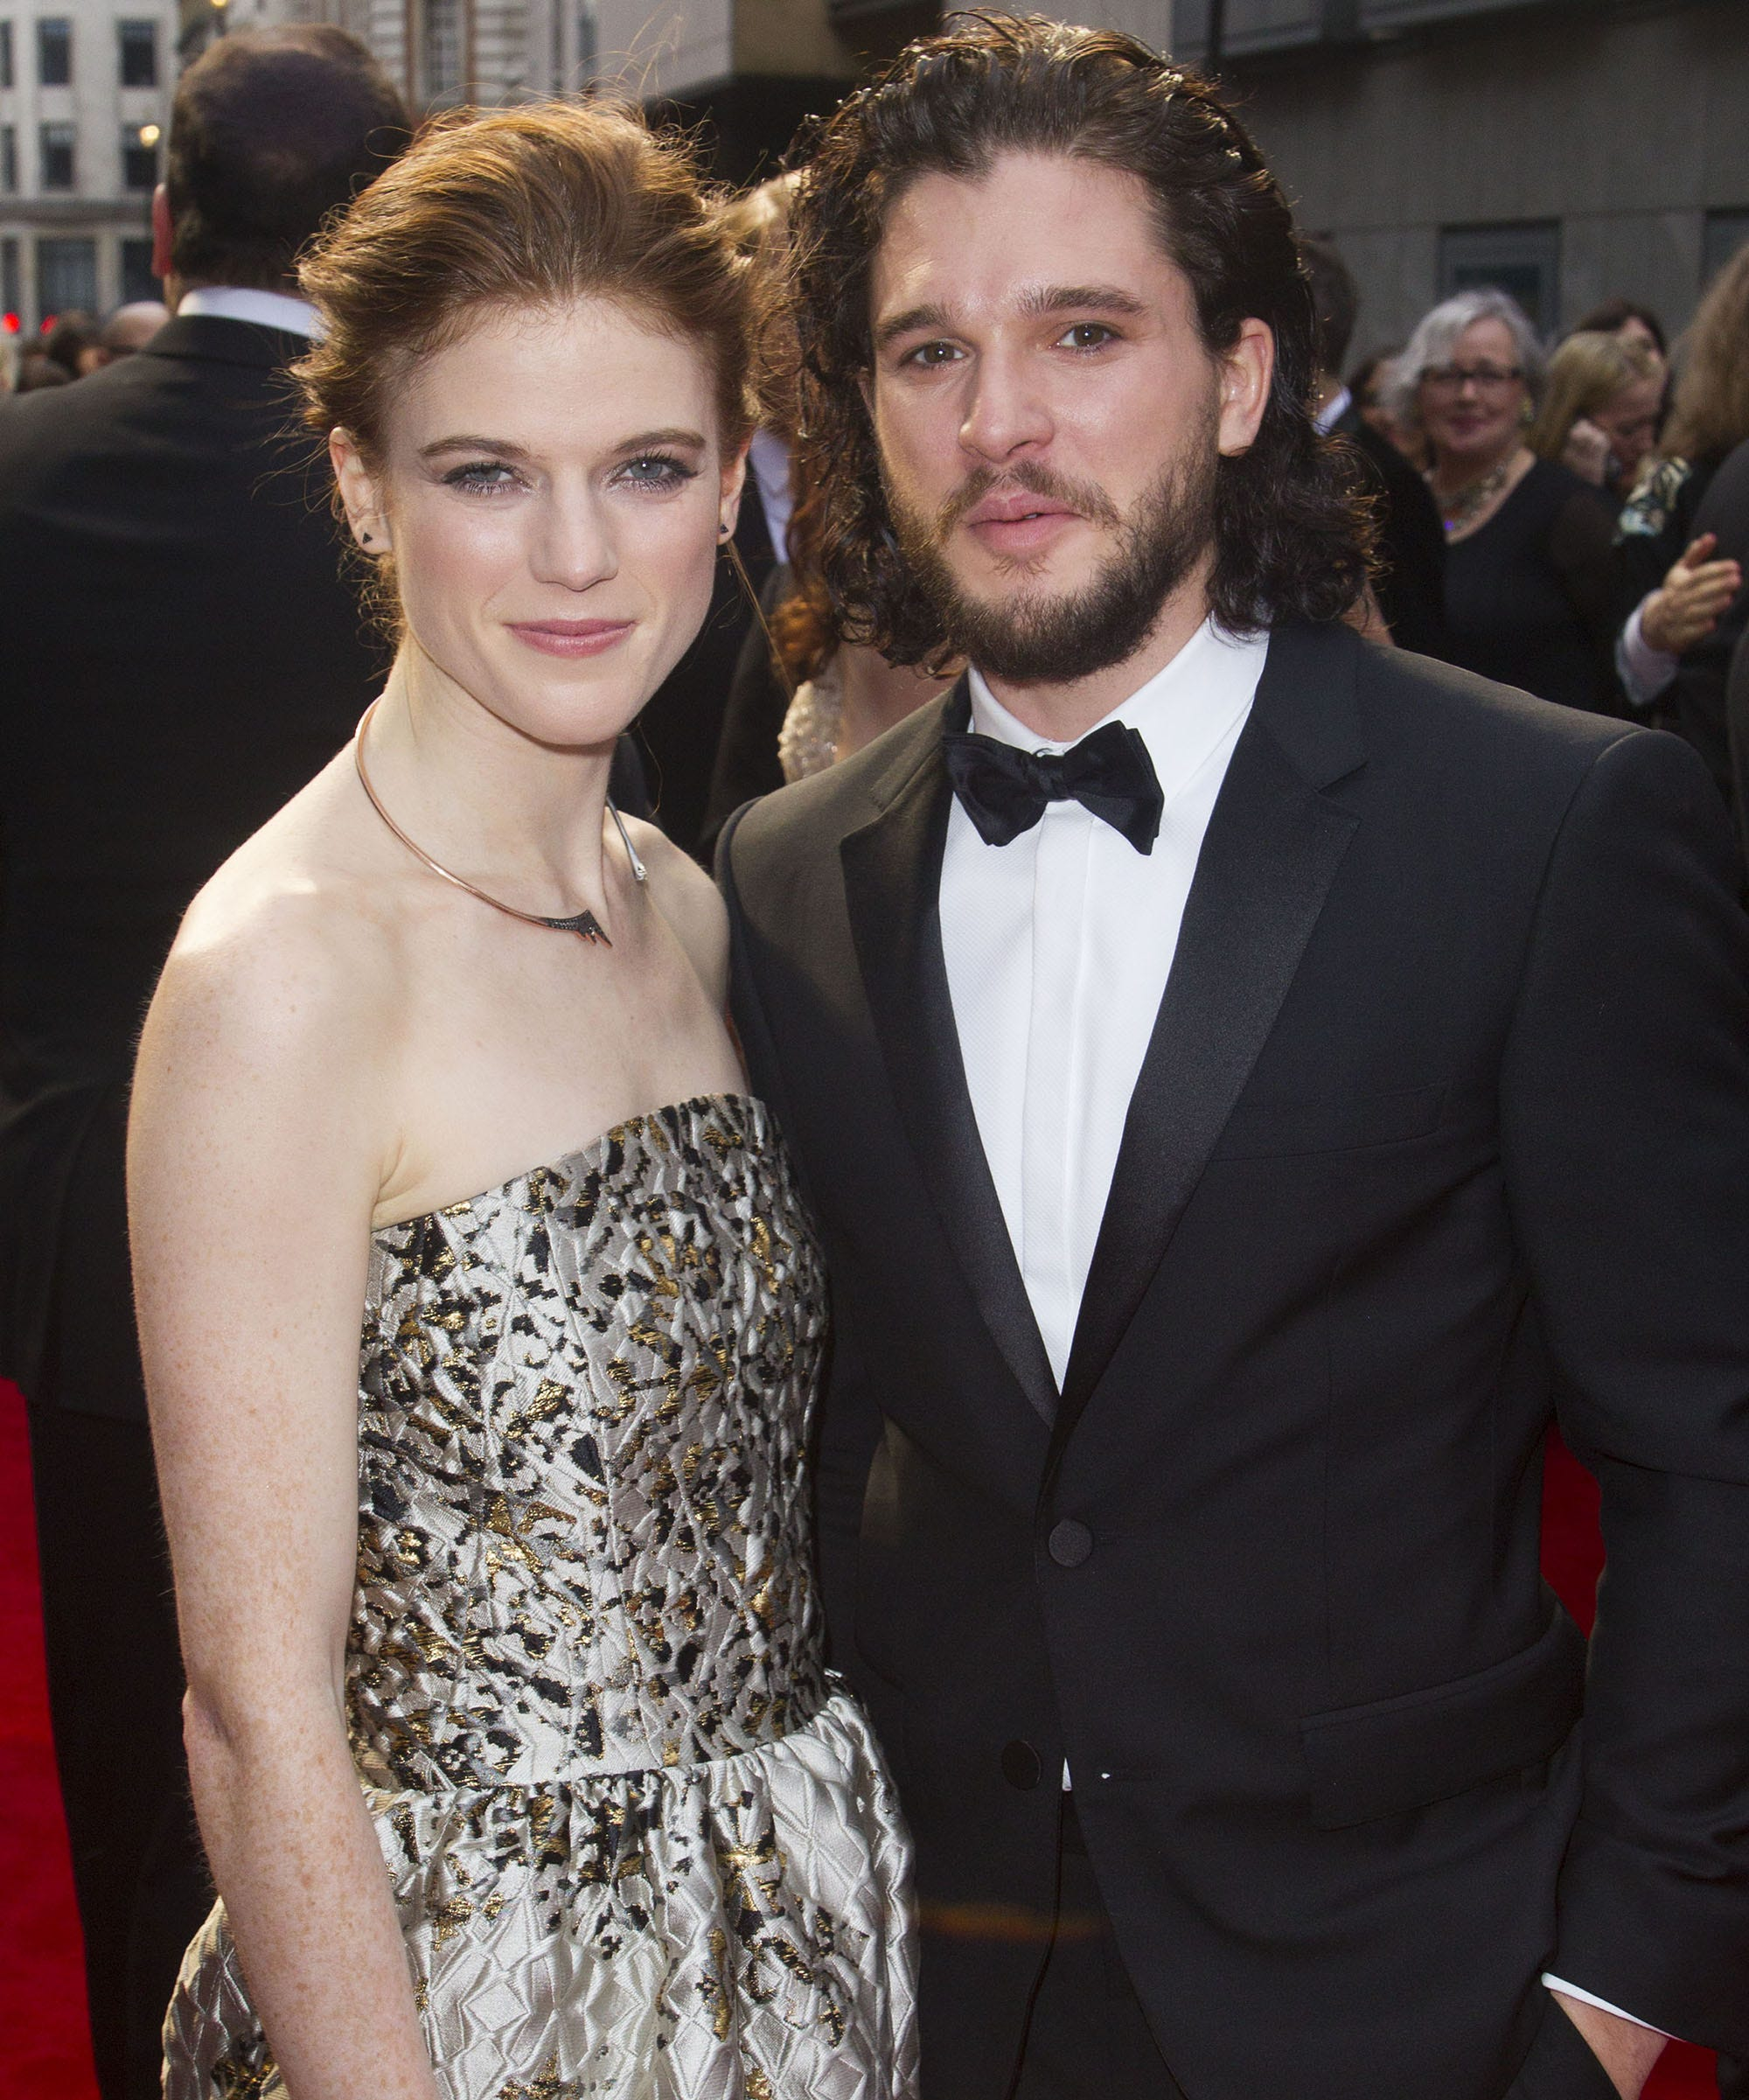 Mentally dating jon snow